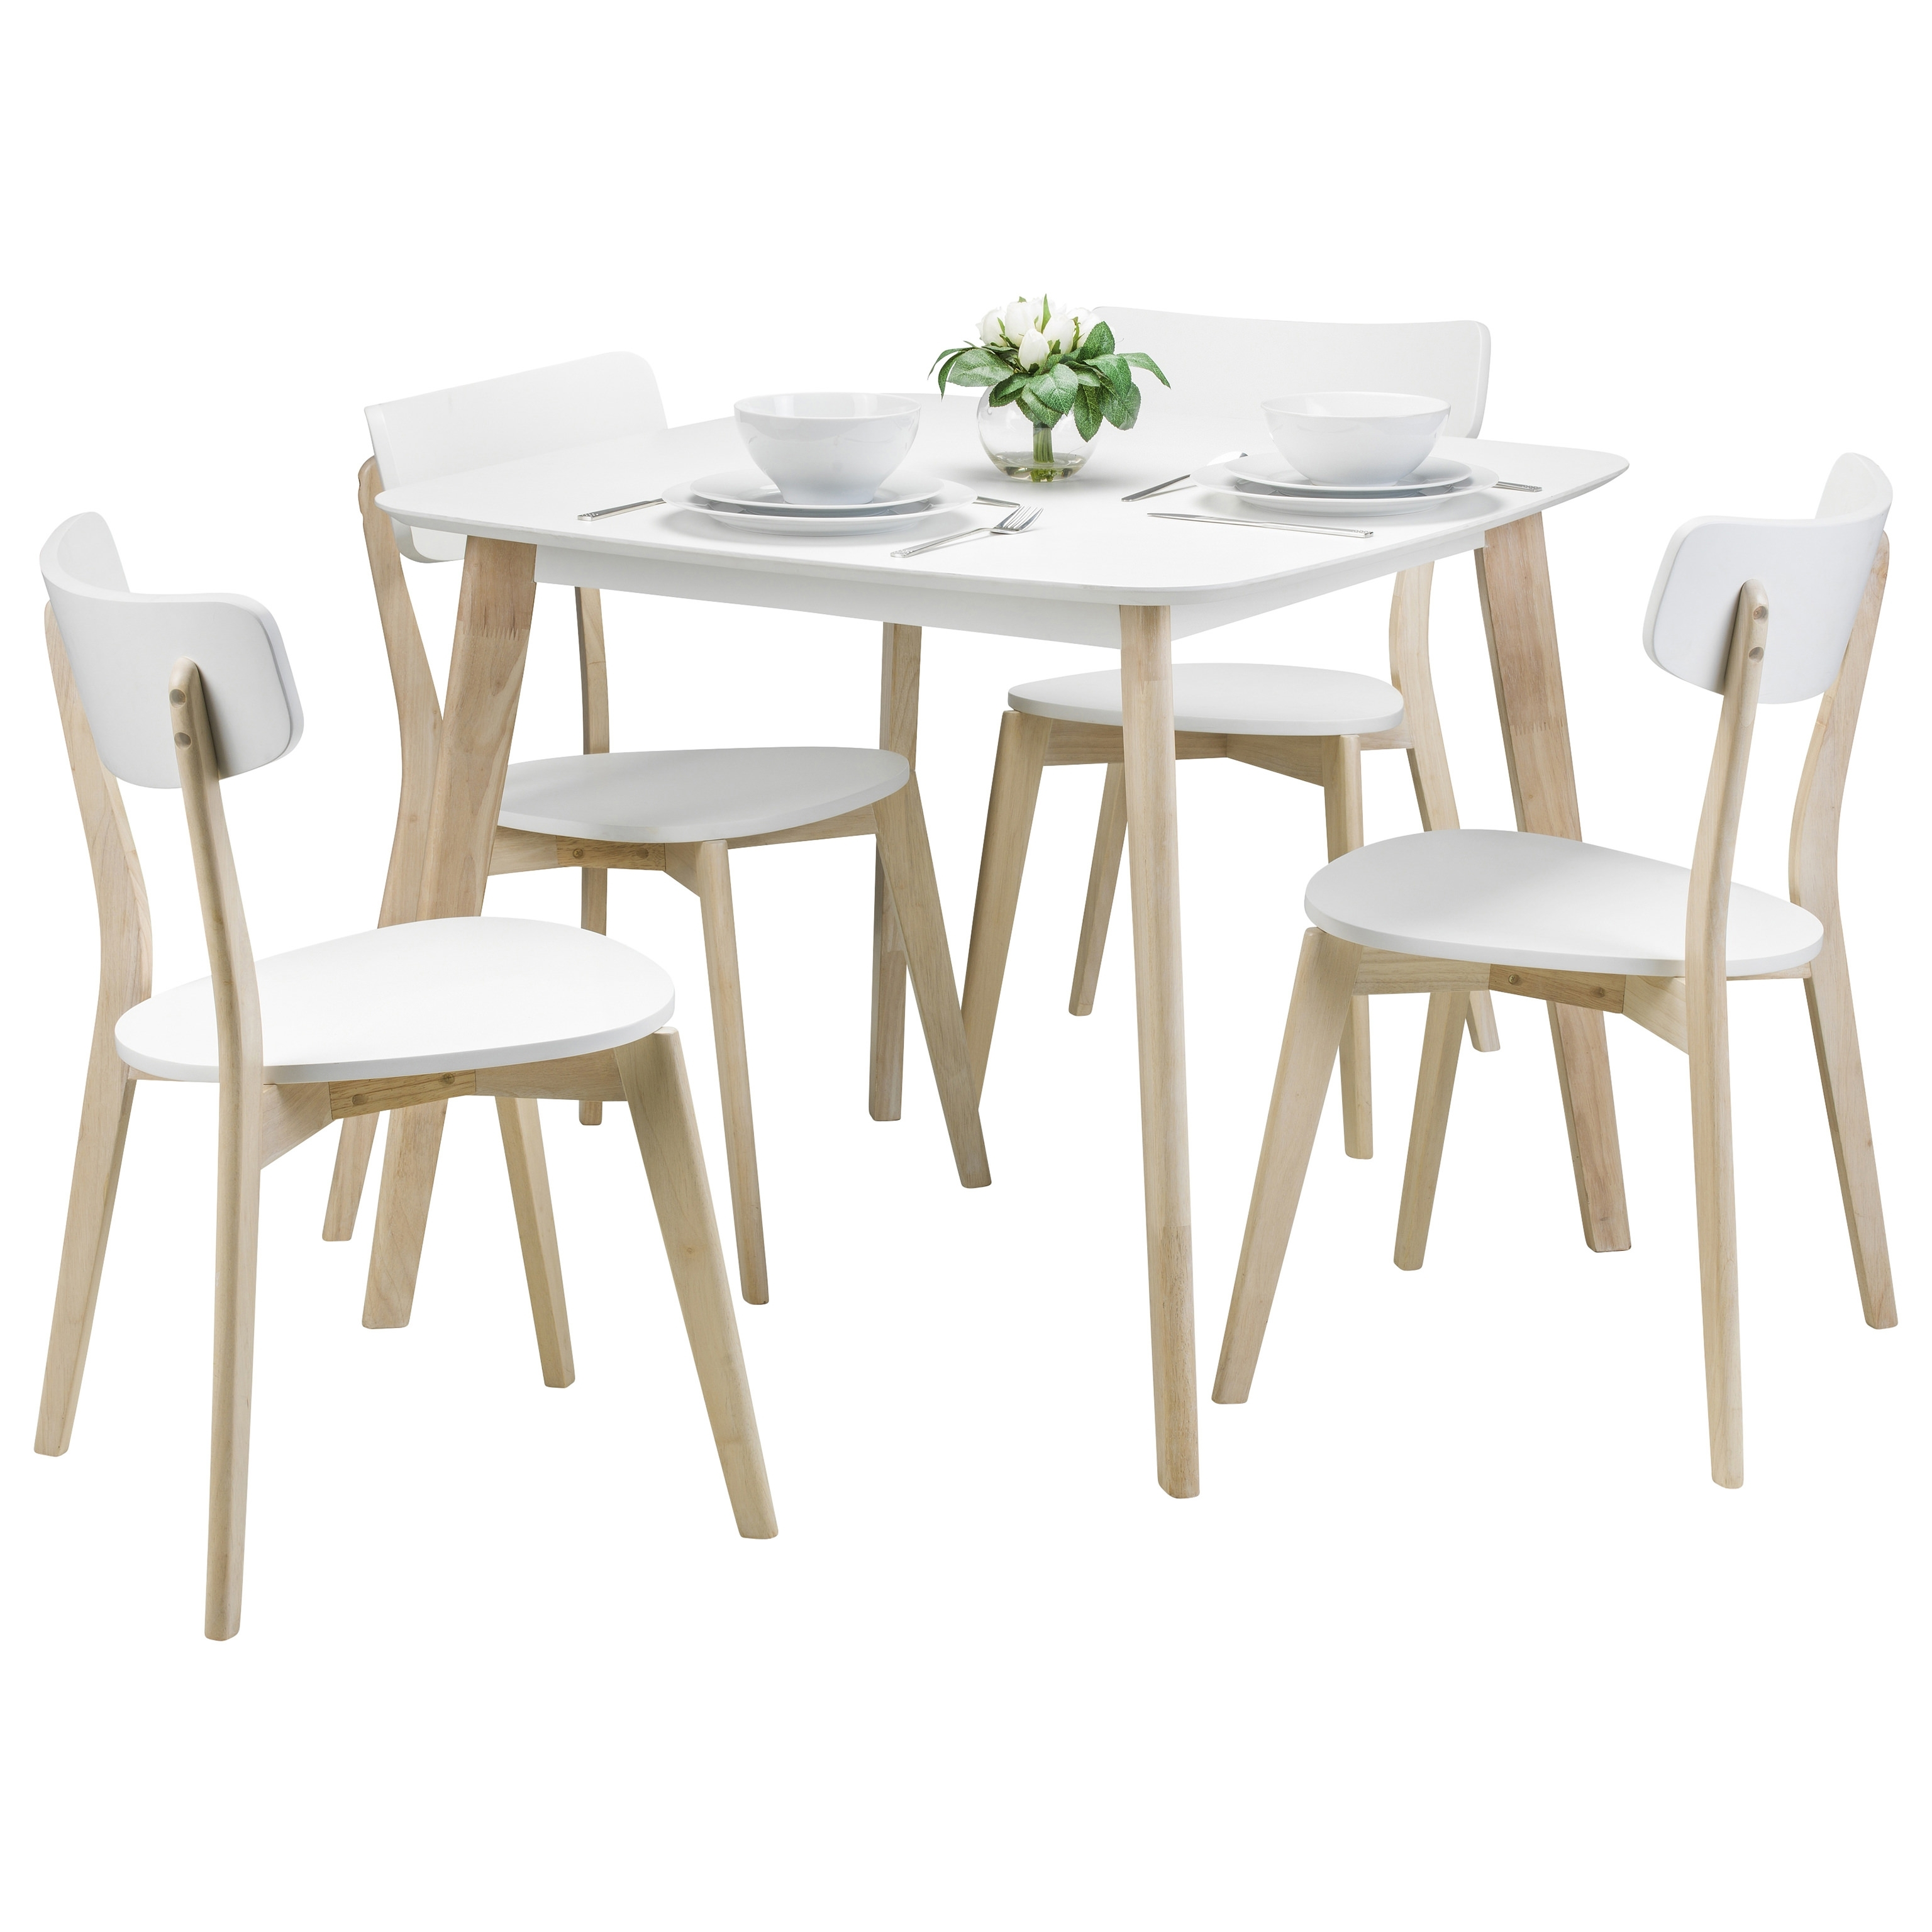 Latest White Finish & Limed Oak Effect Square Dining Table And Chair Set Regarding Square Oak Dining Tables (View 22 of 25)